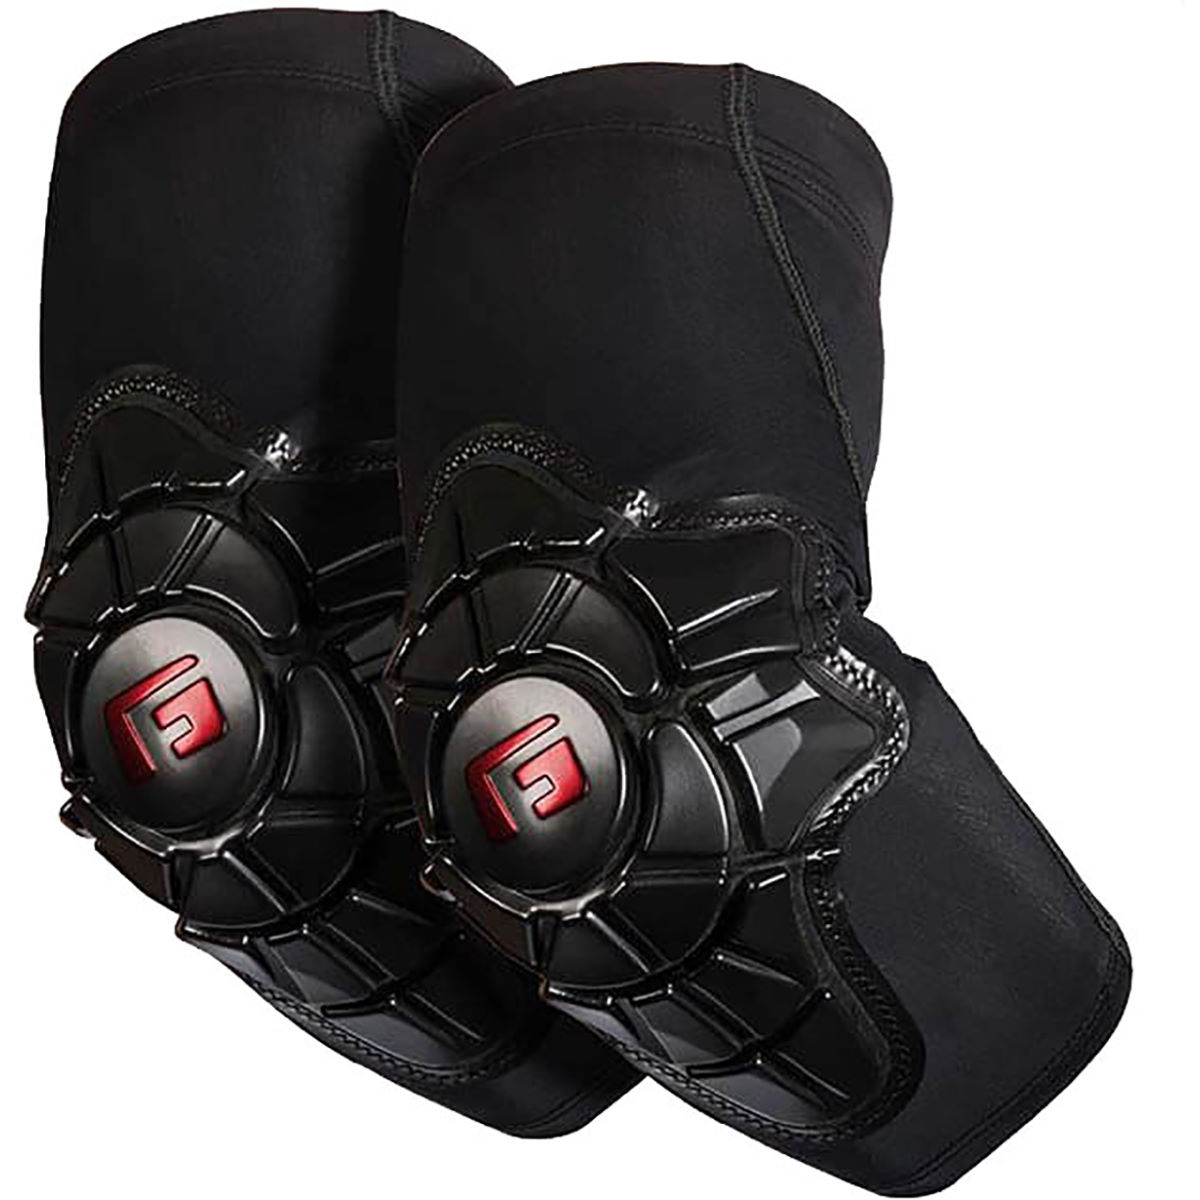 G-Form G-Form Pro-X Elbow   Elbow Pads